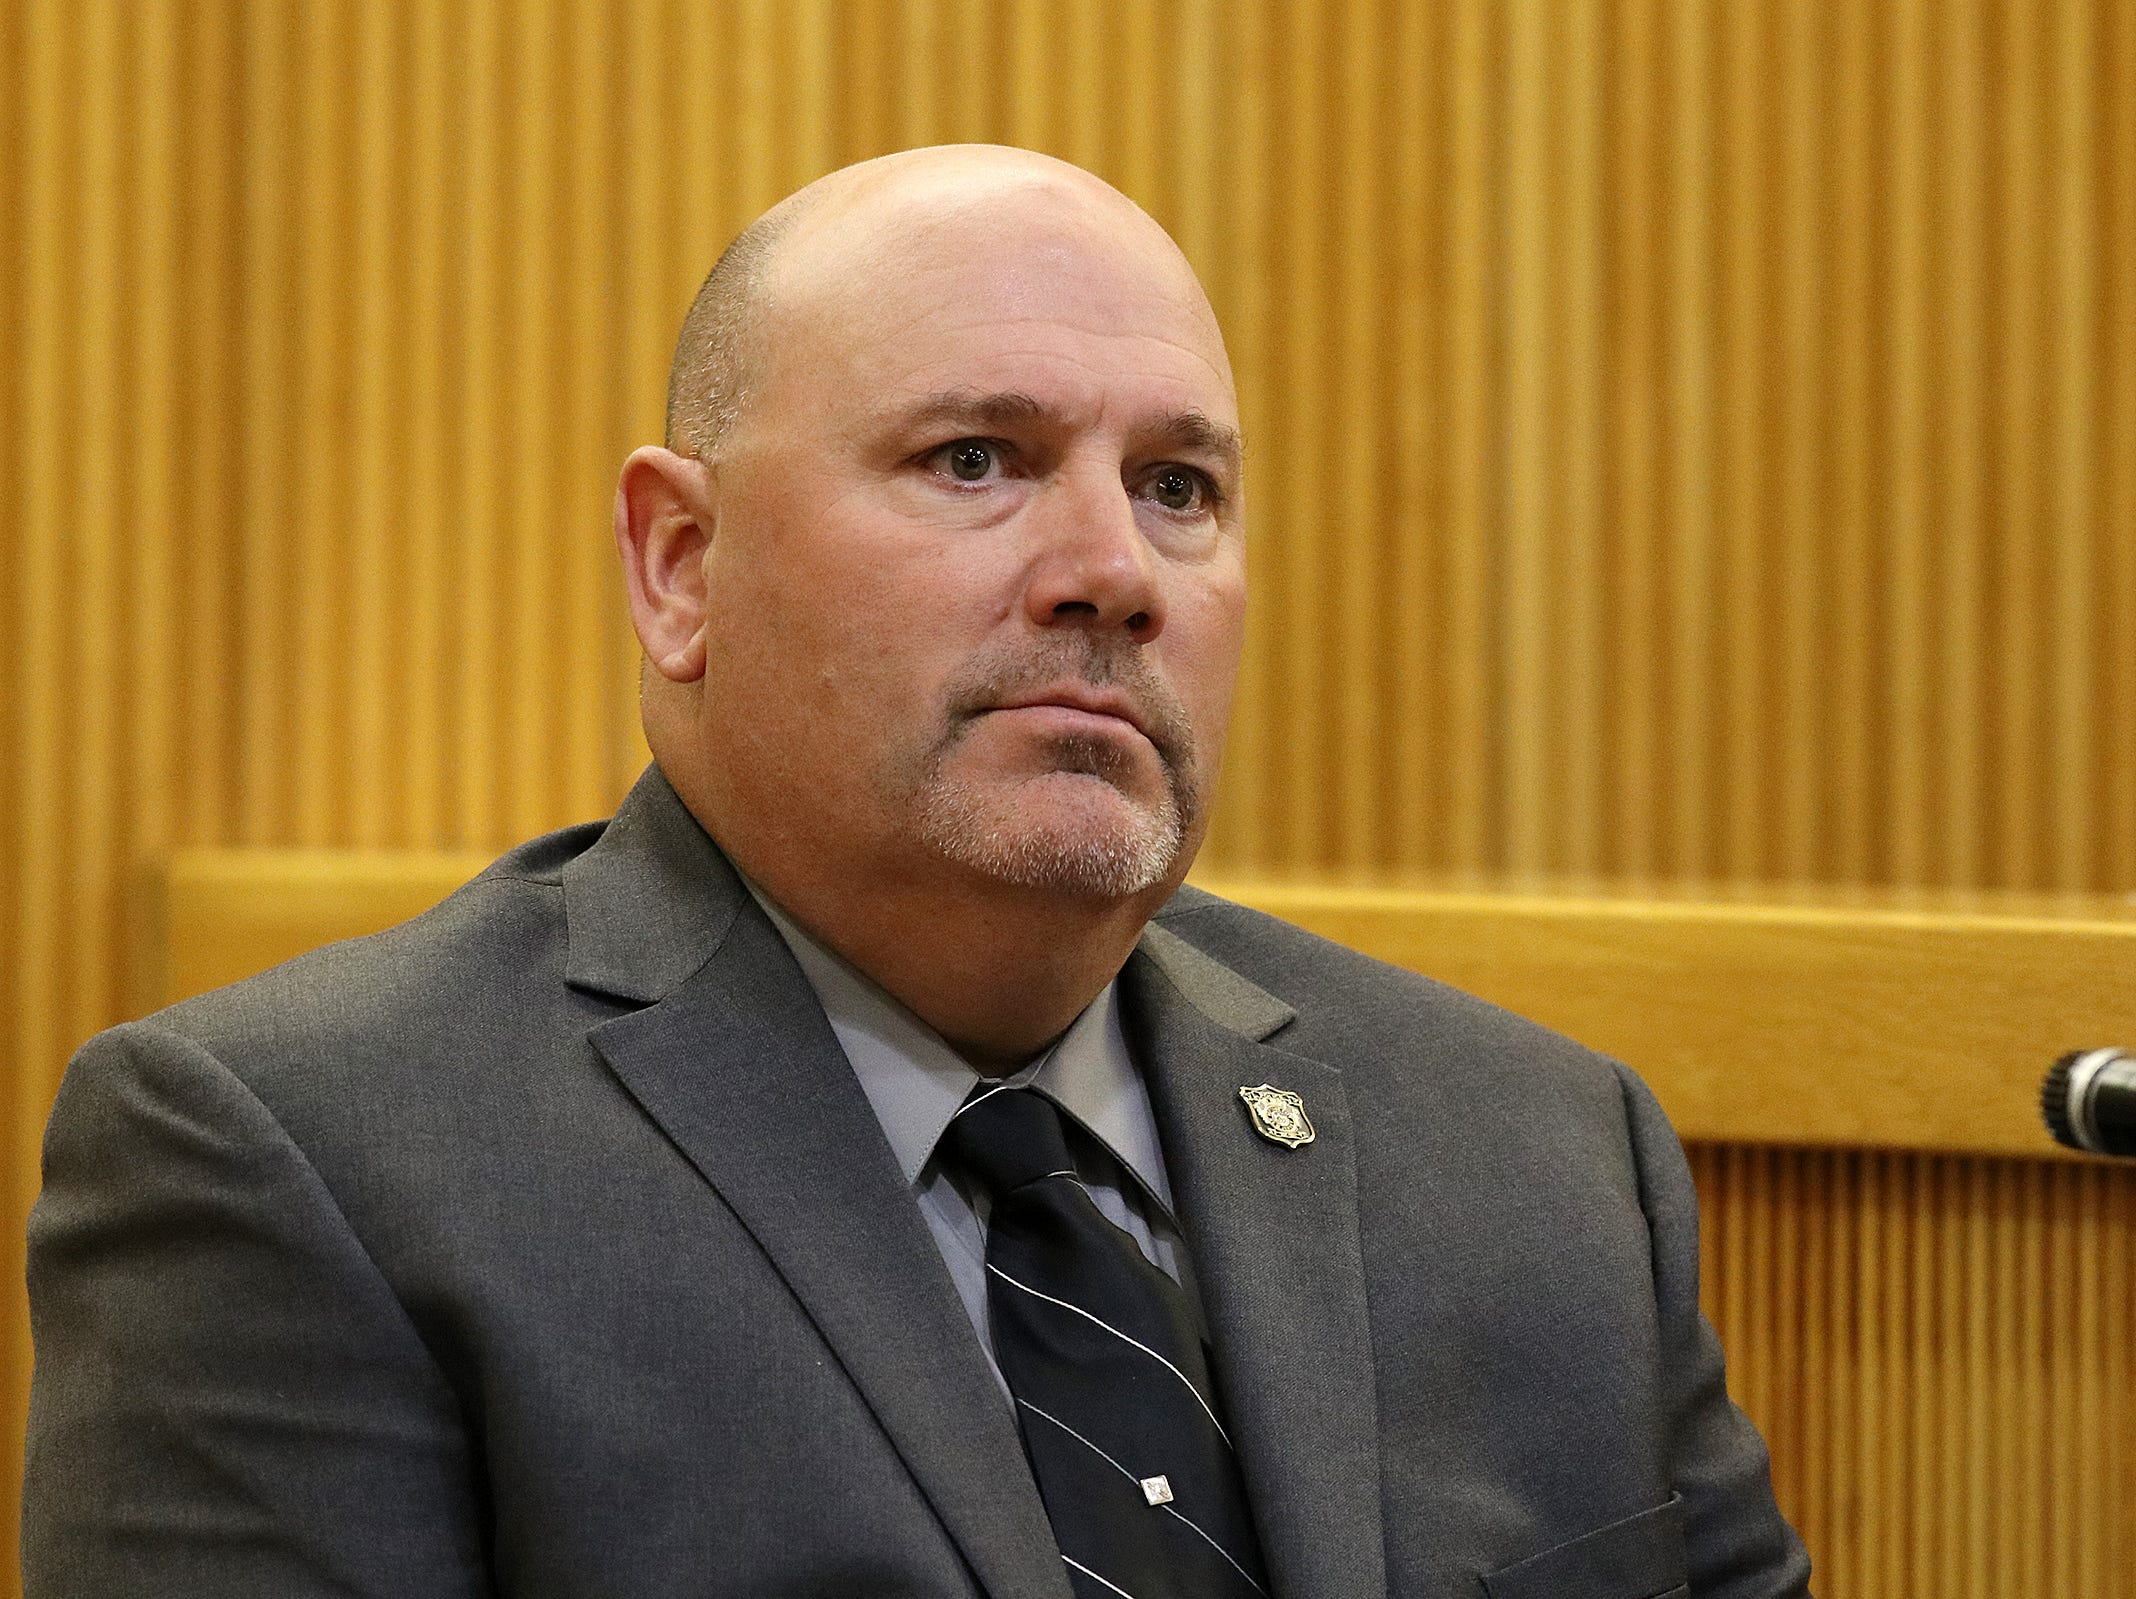 Neptune City Police Ptl. Mike Kepler testifies during the trial of Liam McAtasney, who is charged with the murder of former high school classmate, Sarah Stern, before Superior Court Judge Richard W. English at the Monmouth County Courthouse in Freehold, NJ Tuesday January 29, 2019.